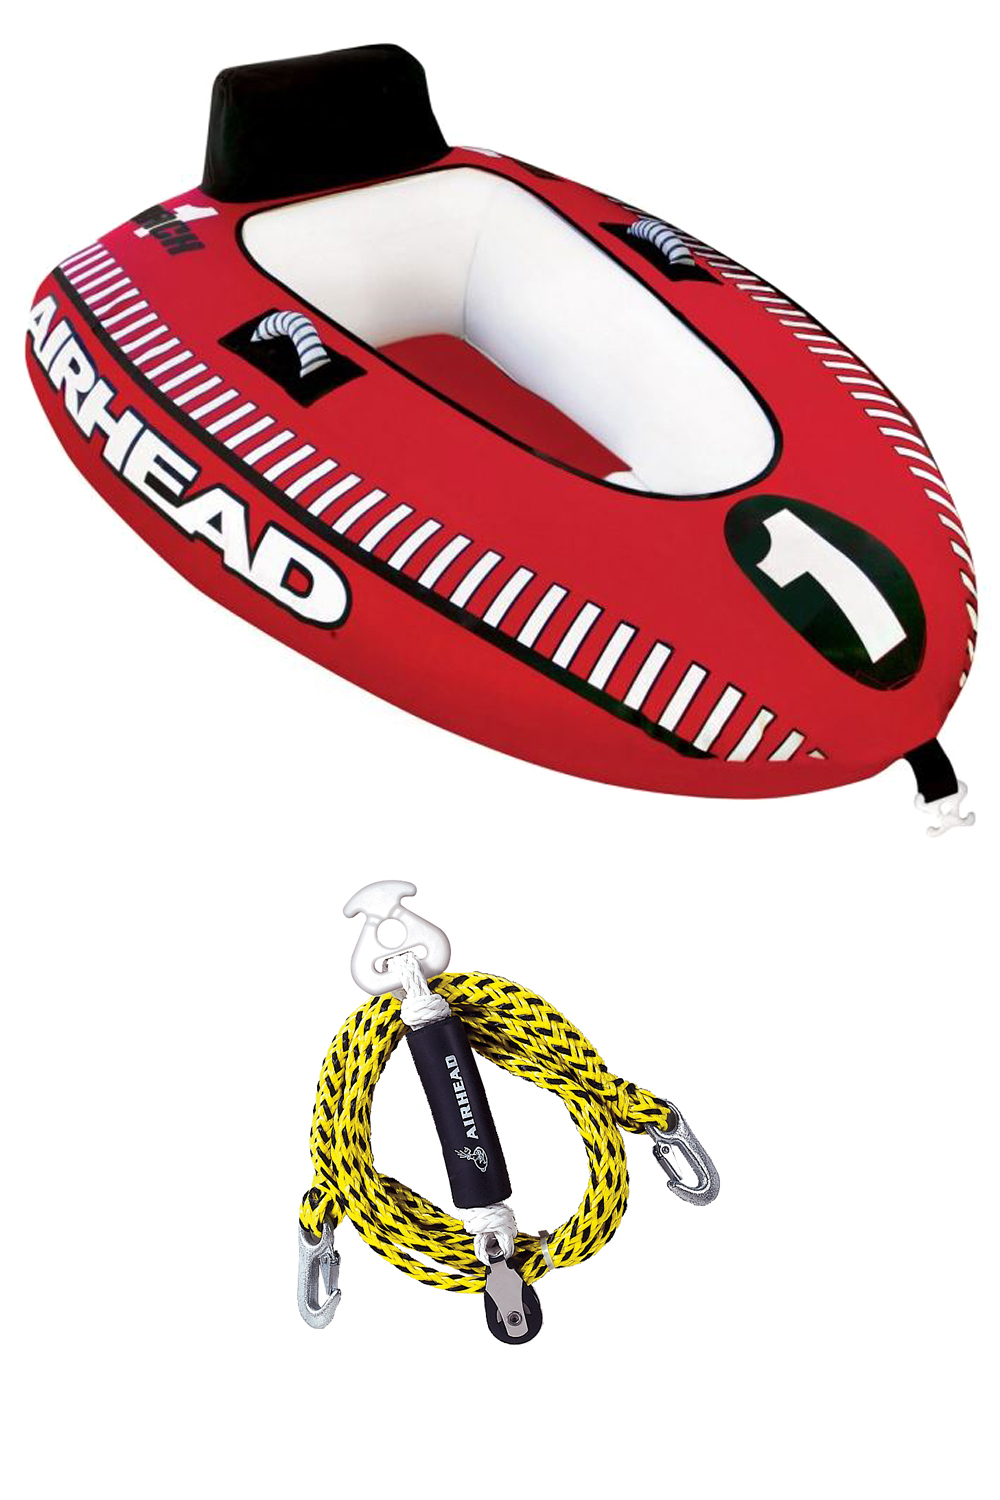 Airhead Mach 1 Single Rider Inflatable Boat Towable Tube + Tow Harness | AHM1-1 by Kwik Tek